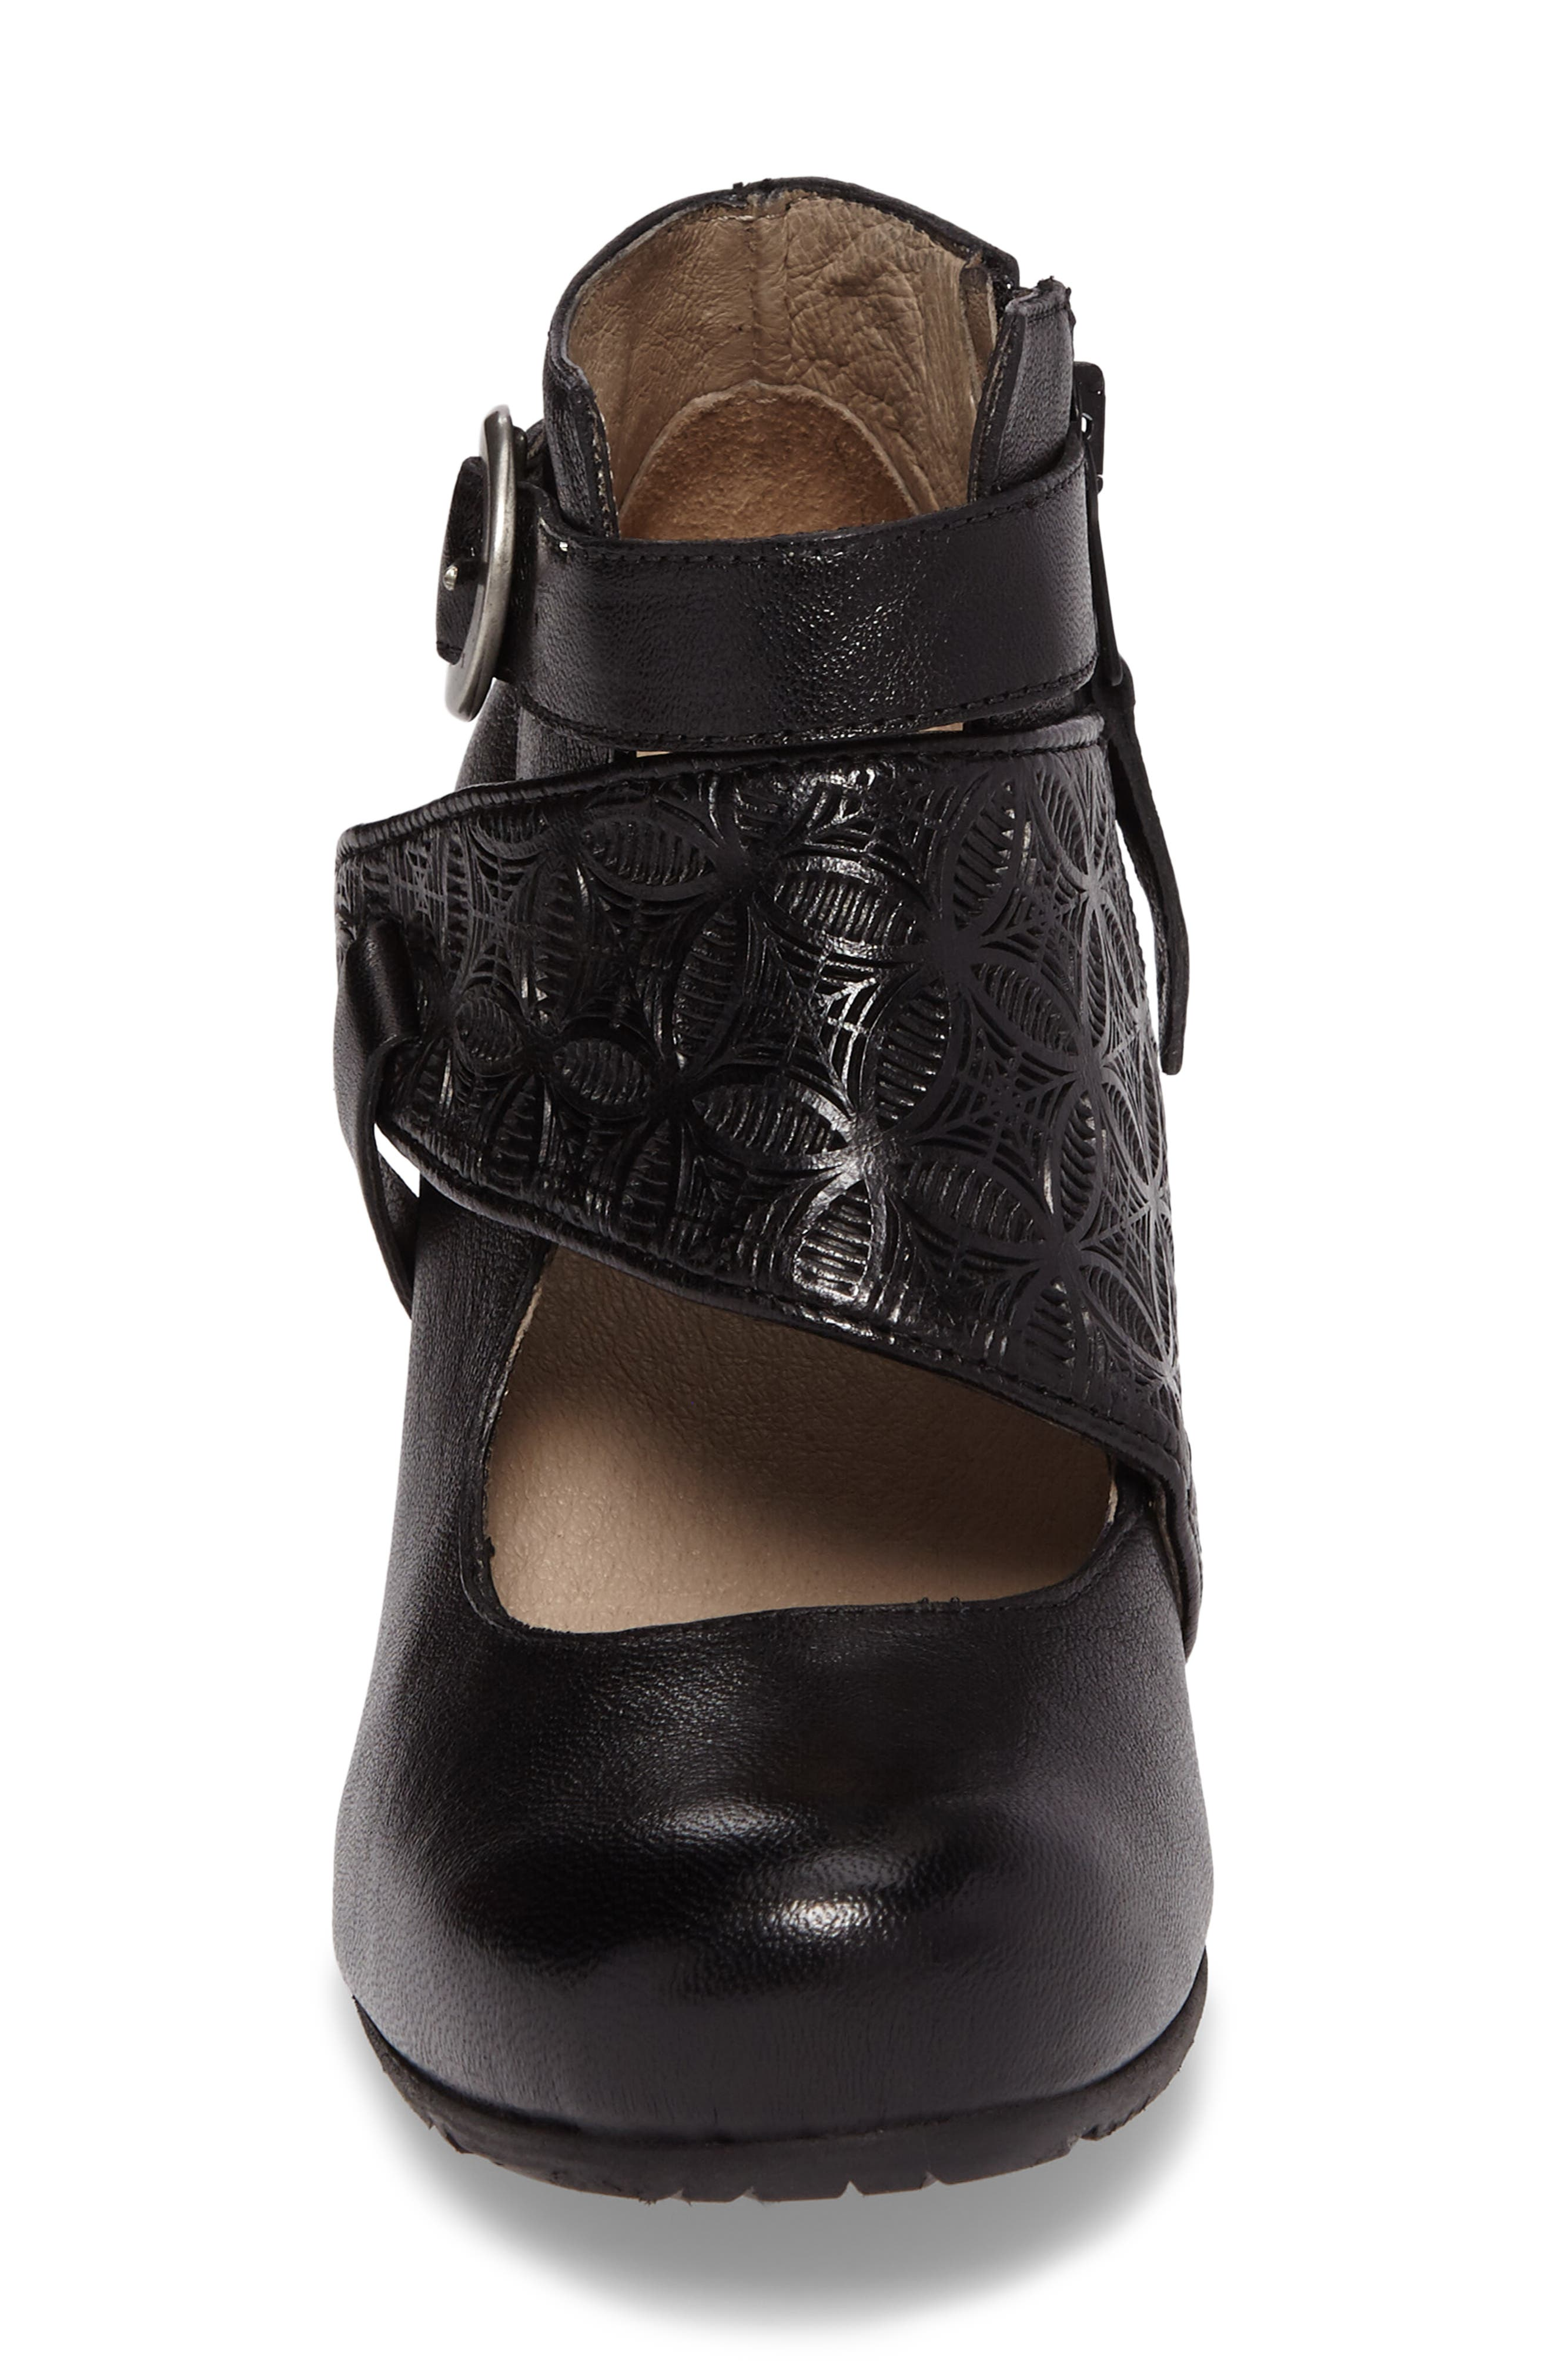 Dale Embossed Mary Jane Bootie,                             Alternate thumbnail 4, color,                             Black